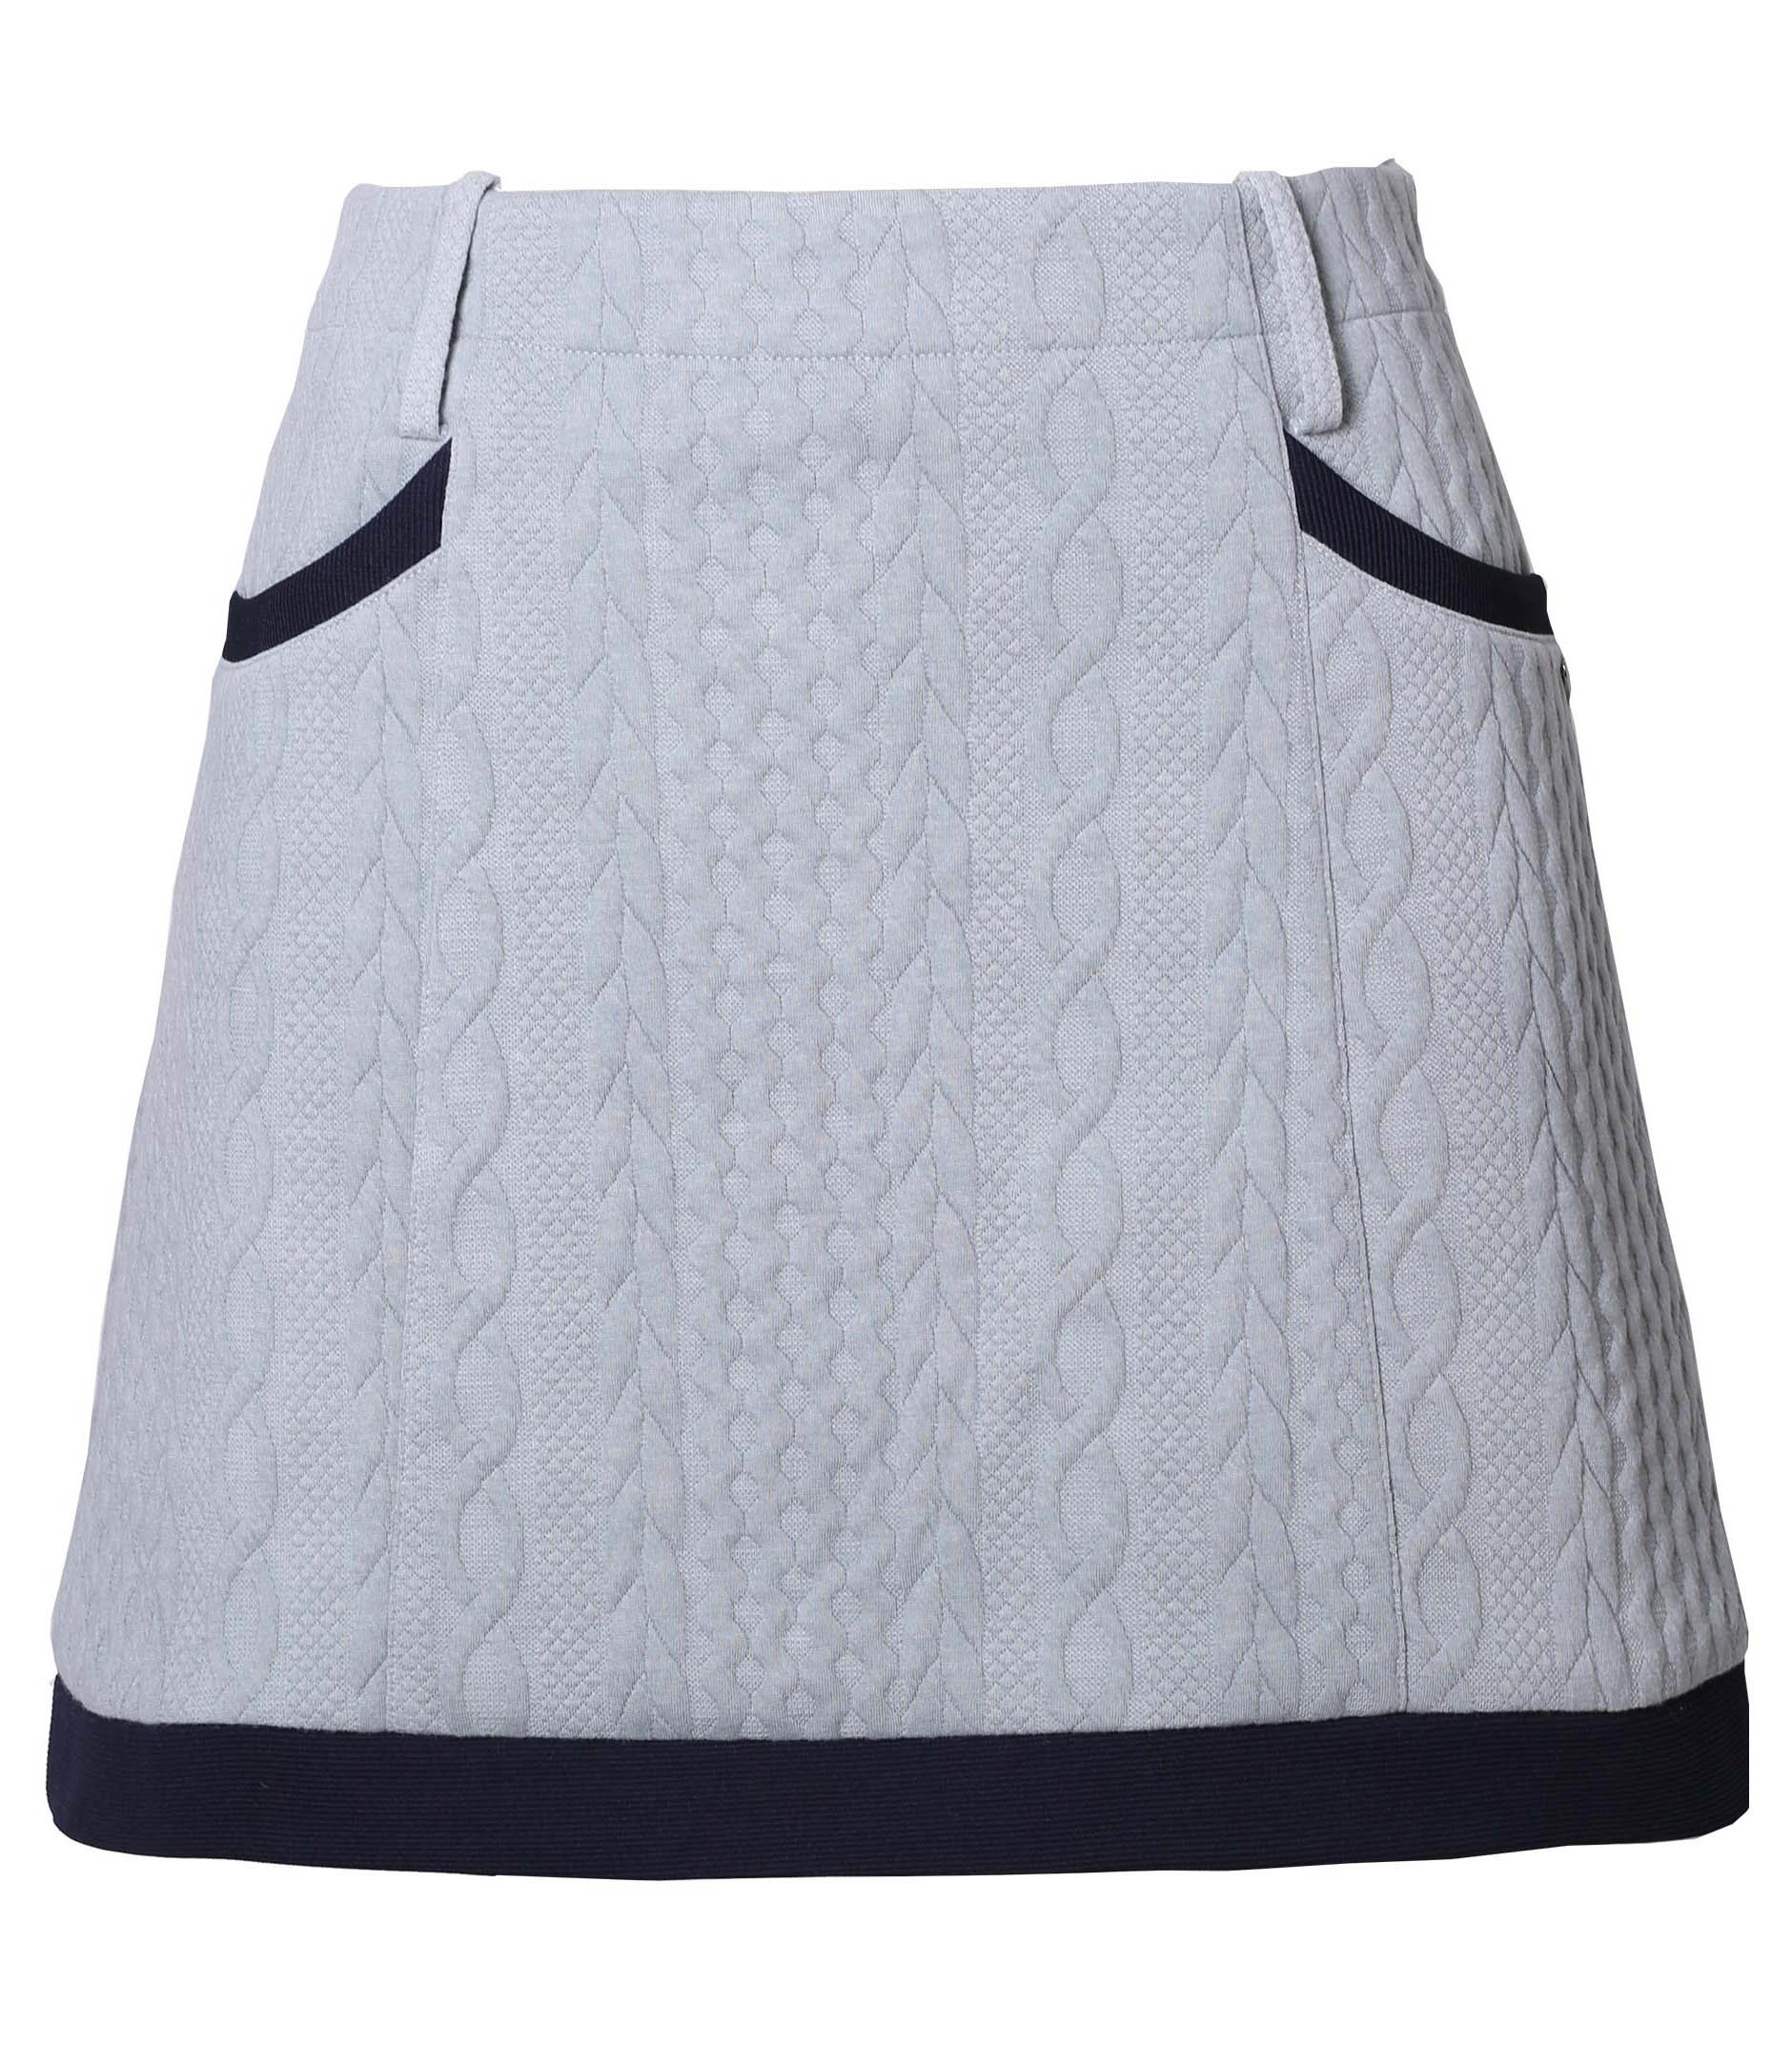 Women's Autumn Cable Knitted Golf Skorts A-line Quilted Casual Skirt Grey M by SunviewGolf